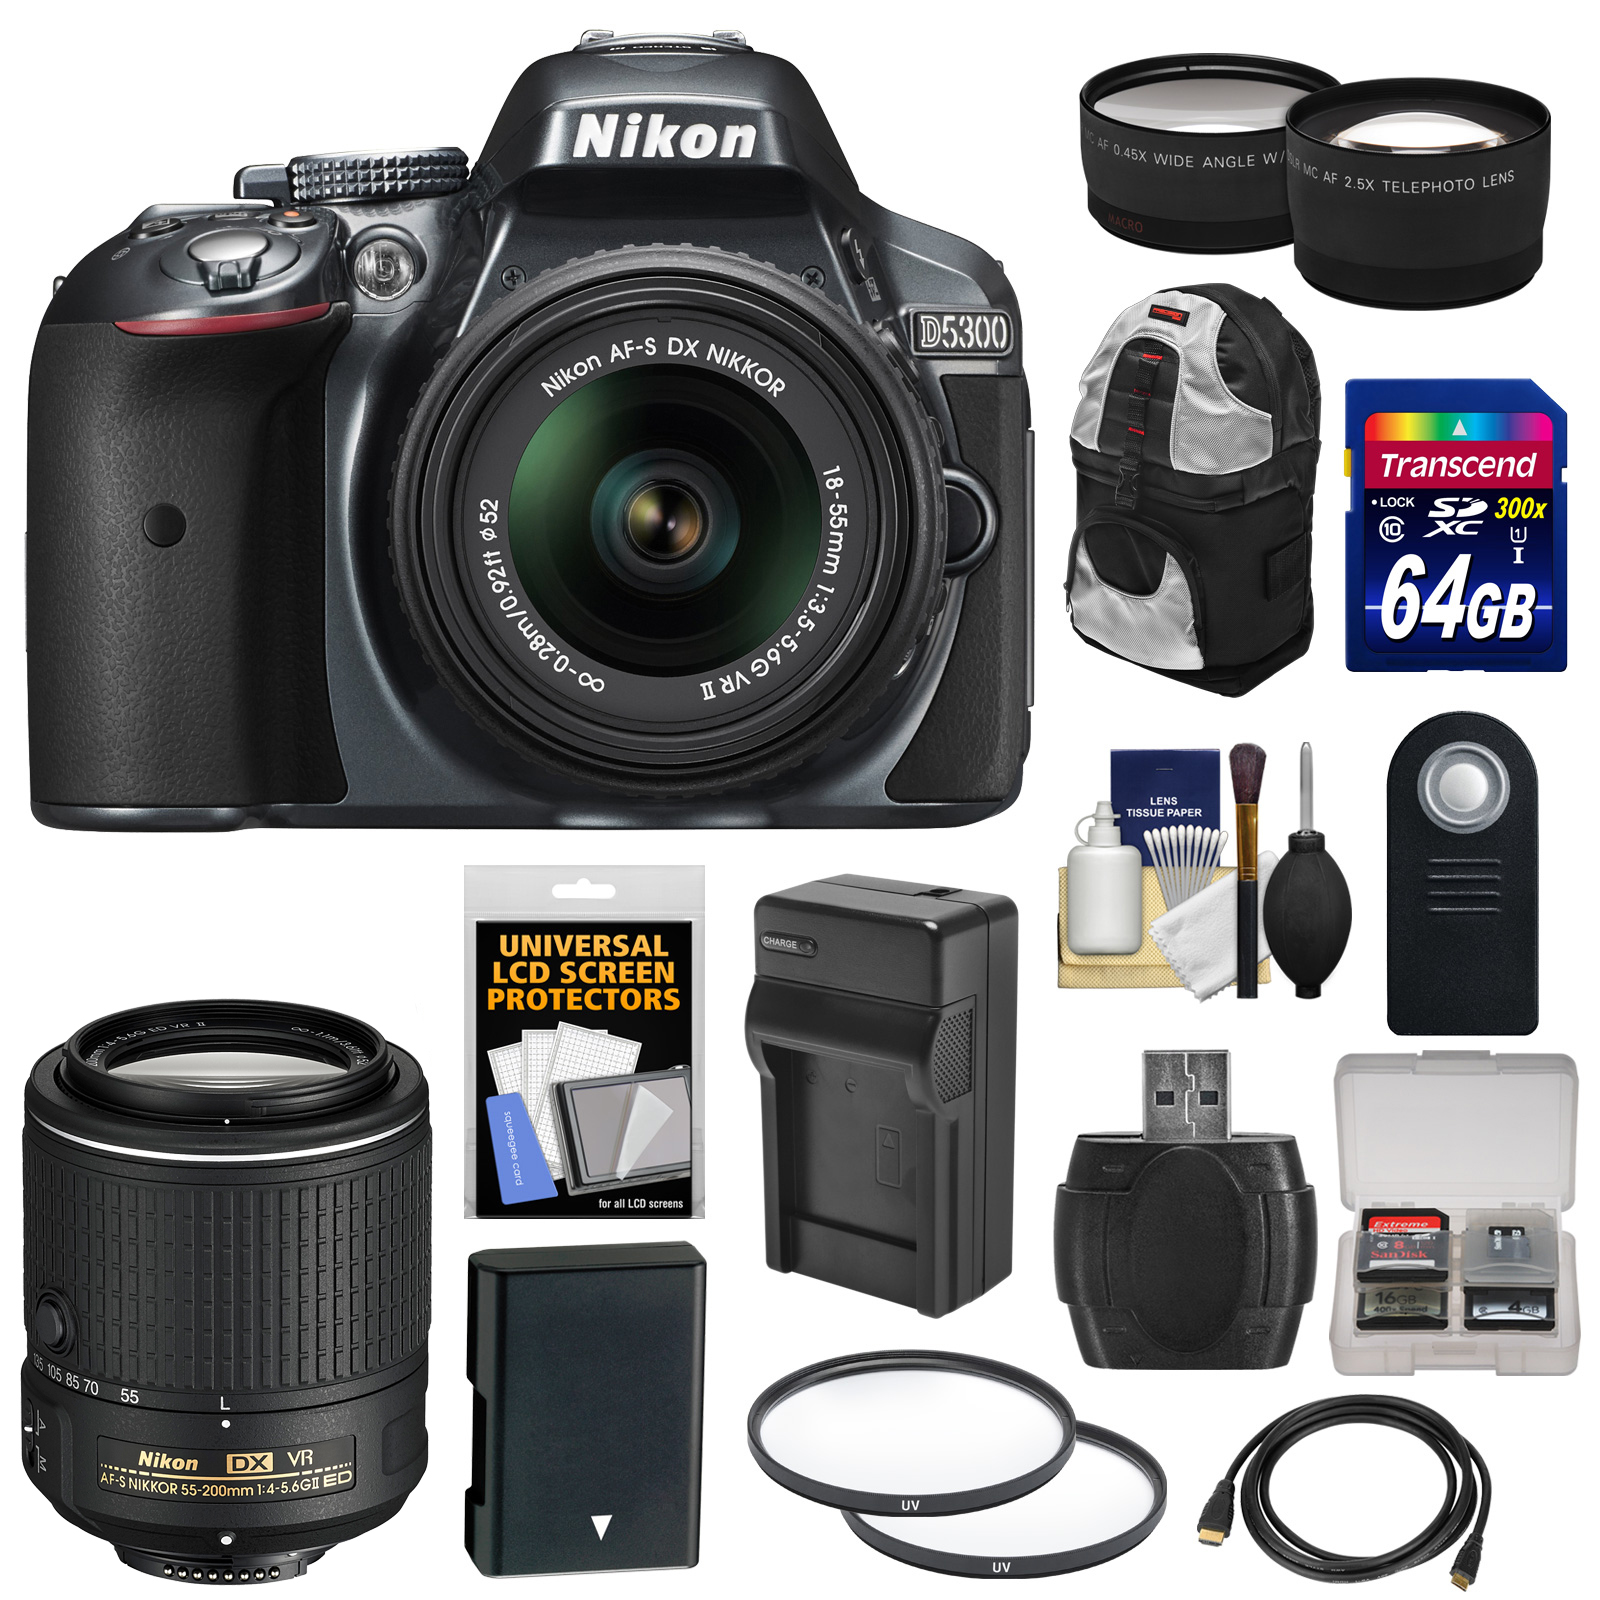 Nikon D5300 Digital SLR Camera & 18-55mm G VR II Lens (Grey) with 55-200mm VR II Lens + 64GB Card + Backpack + Battery & Charger + Tele/Wide Lens Kit